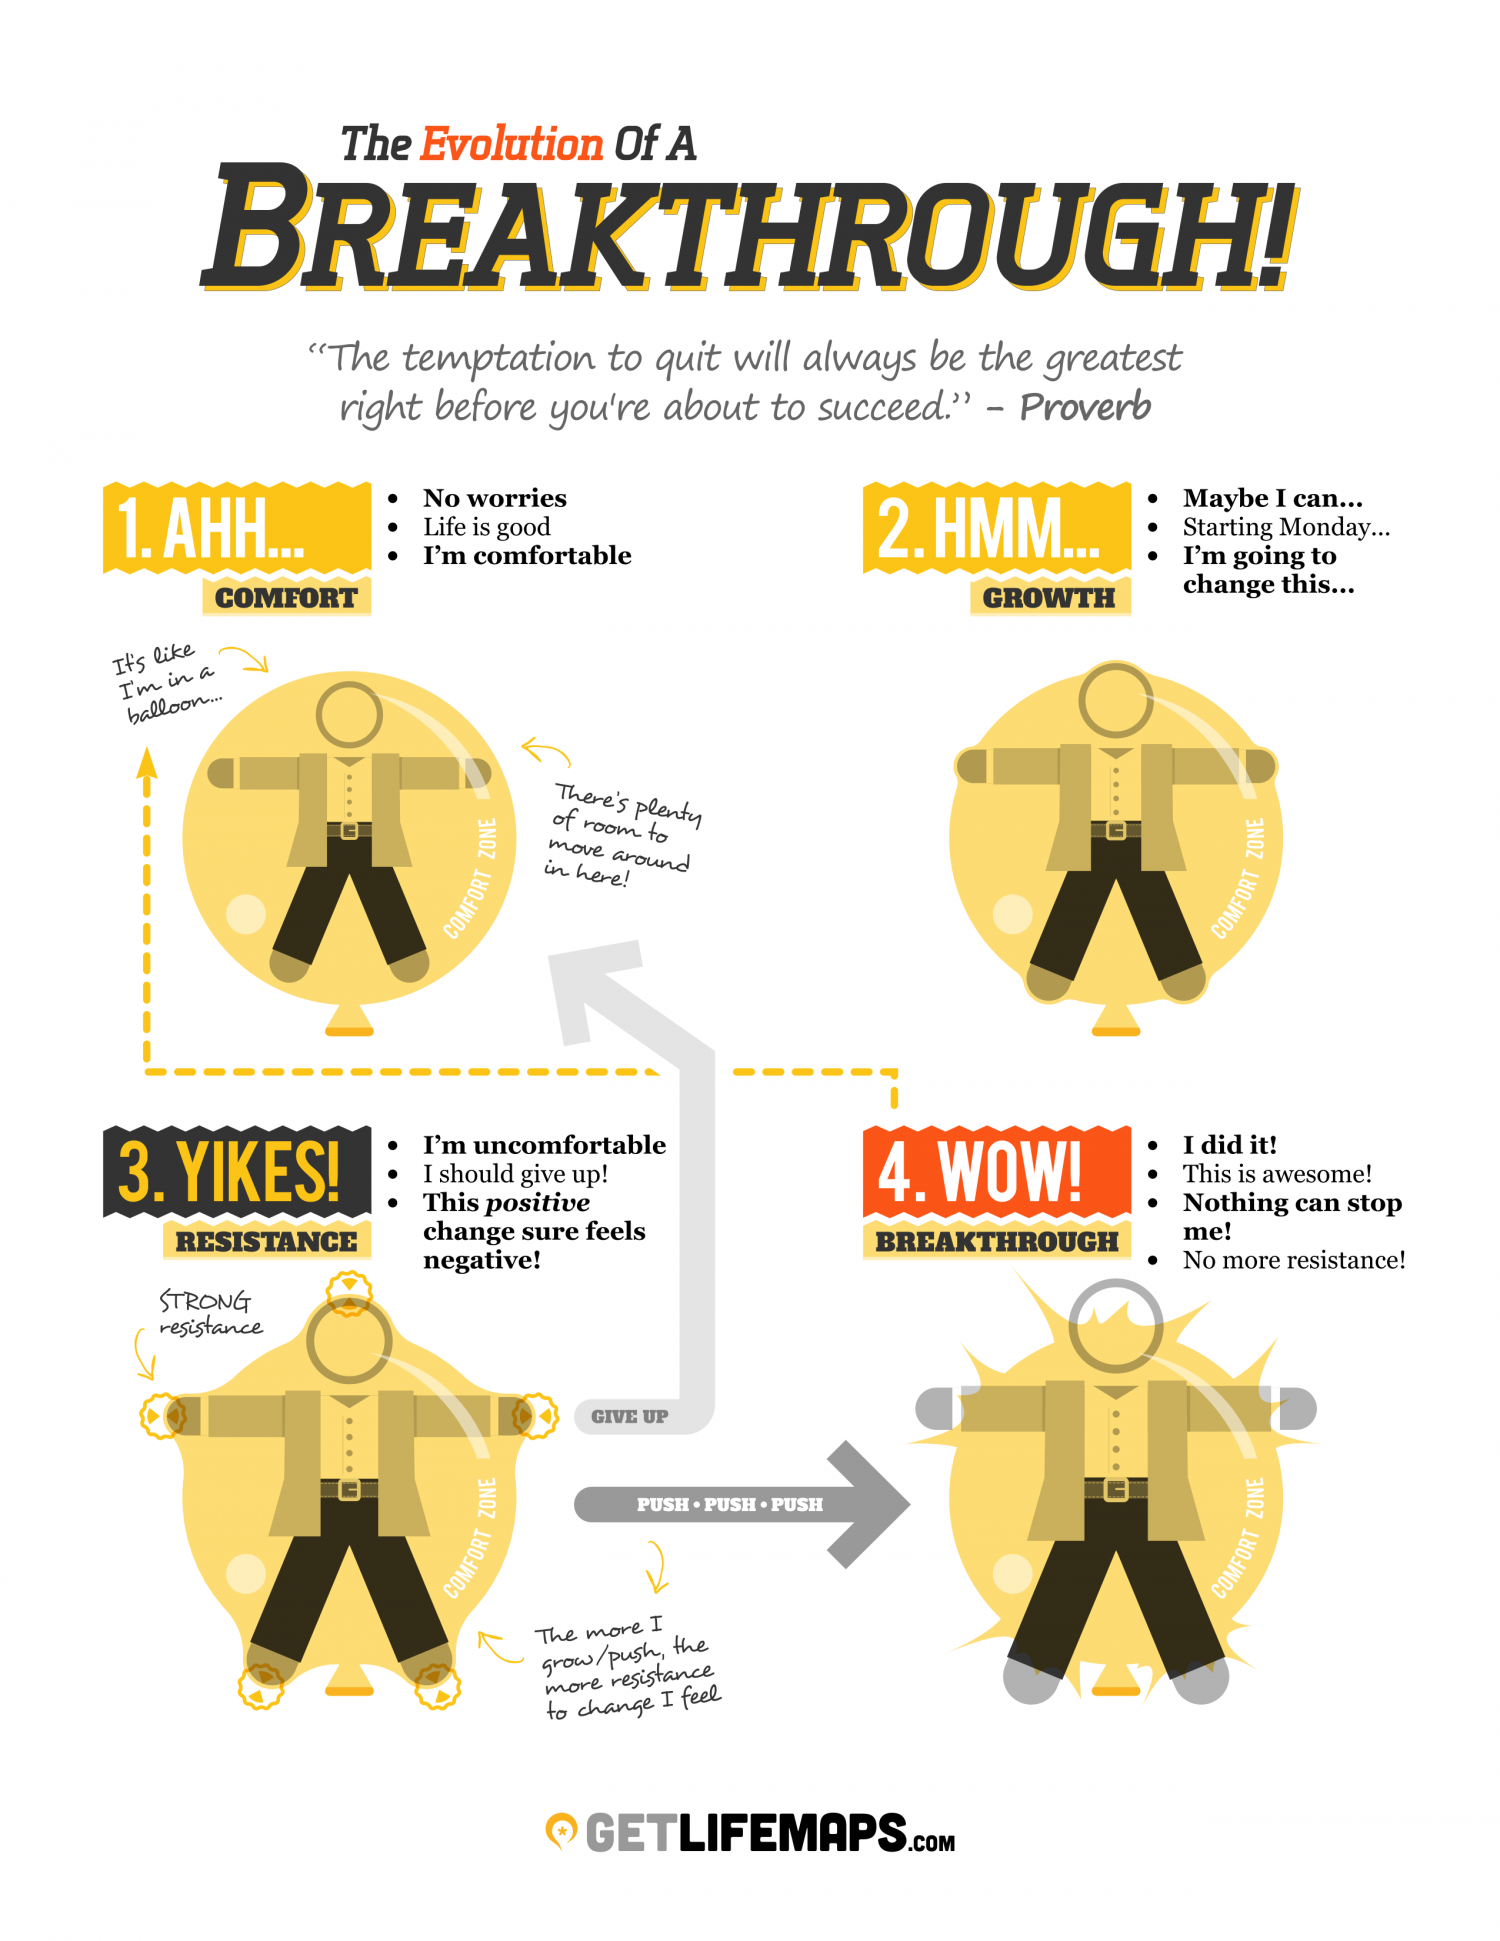 The 4 Stages Of A Breakthrough - Where Are You? Infographic